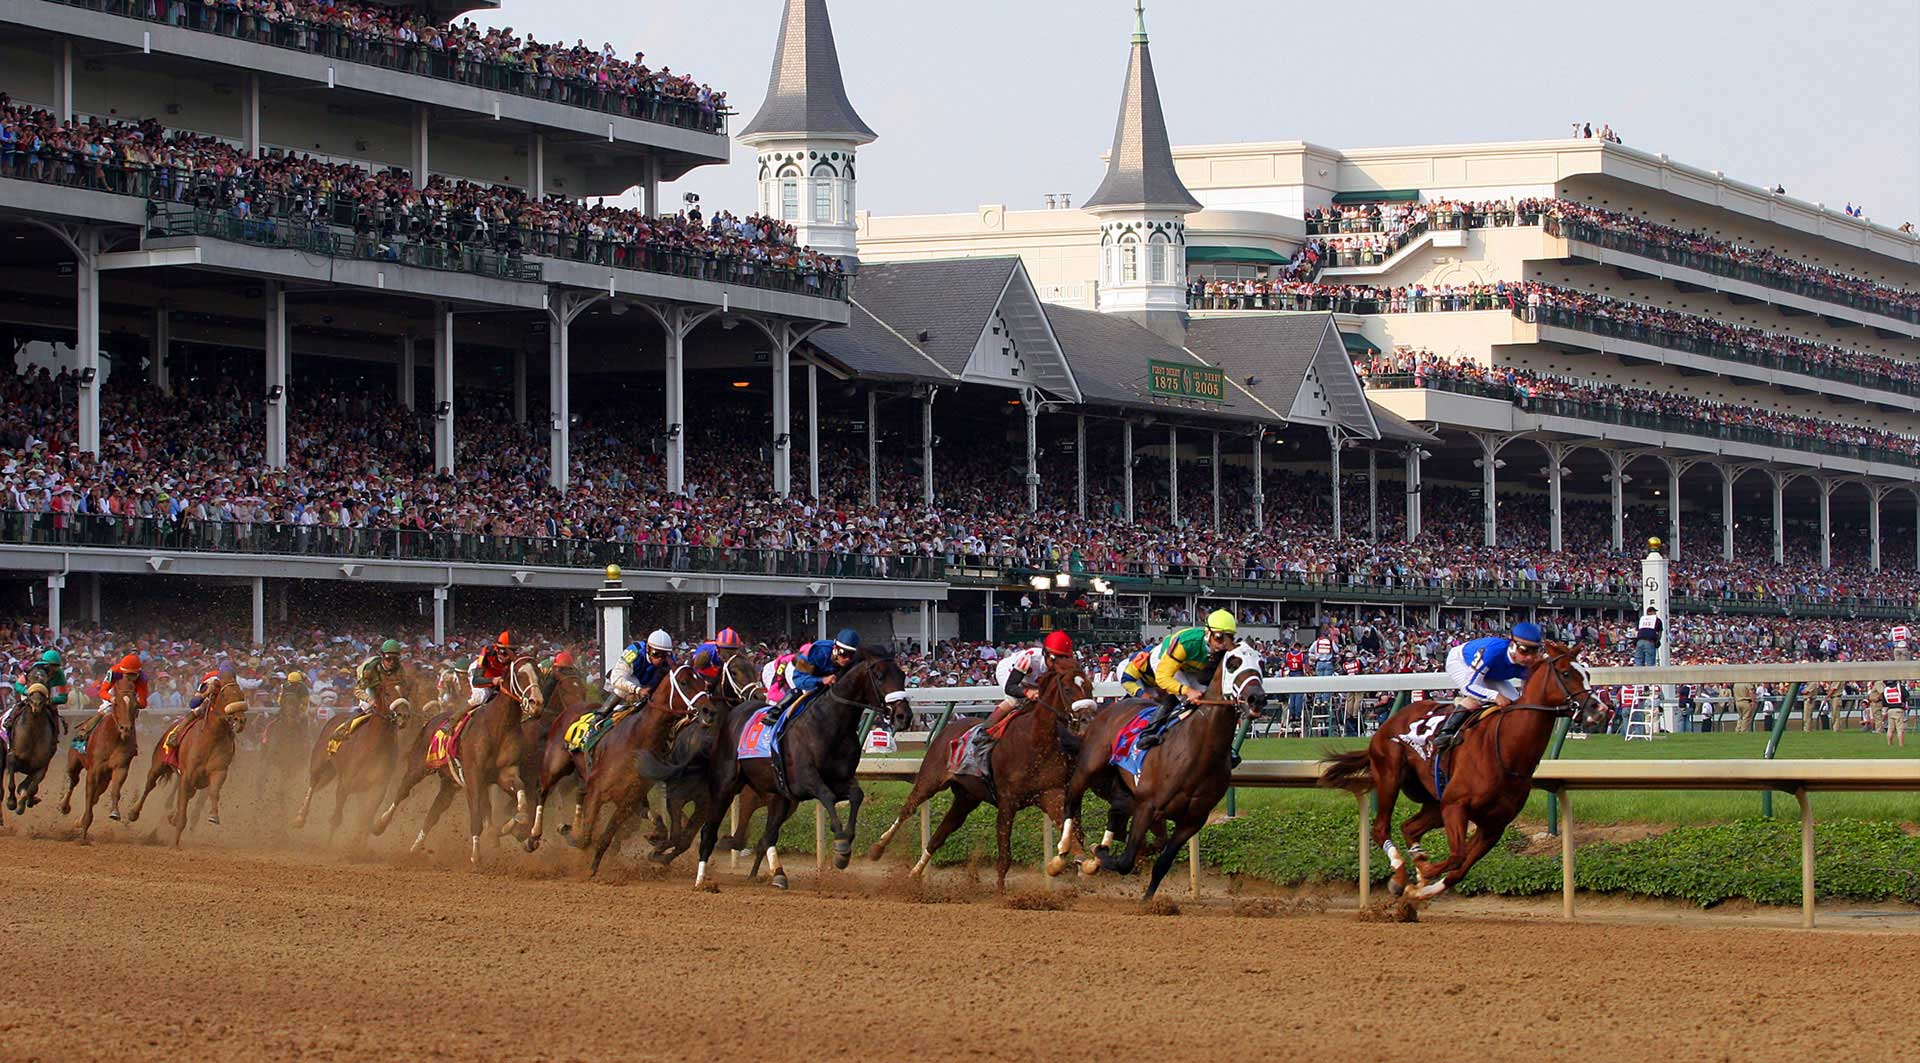 The 2019 Kentucky Derby may 2020